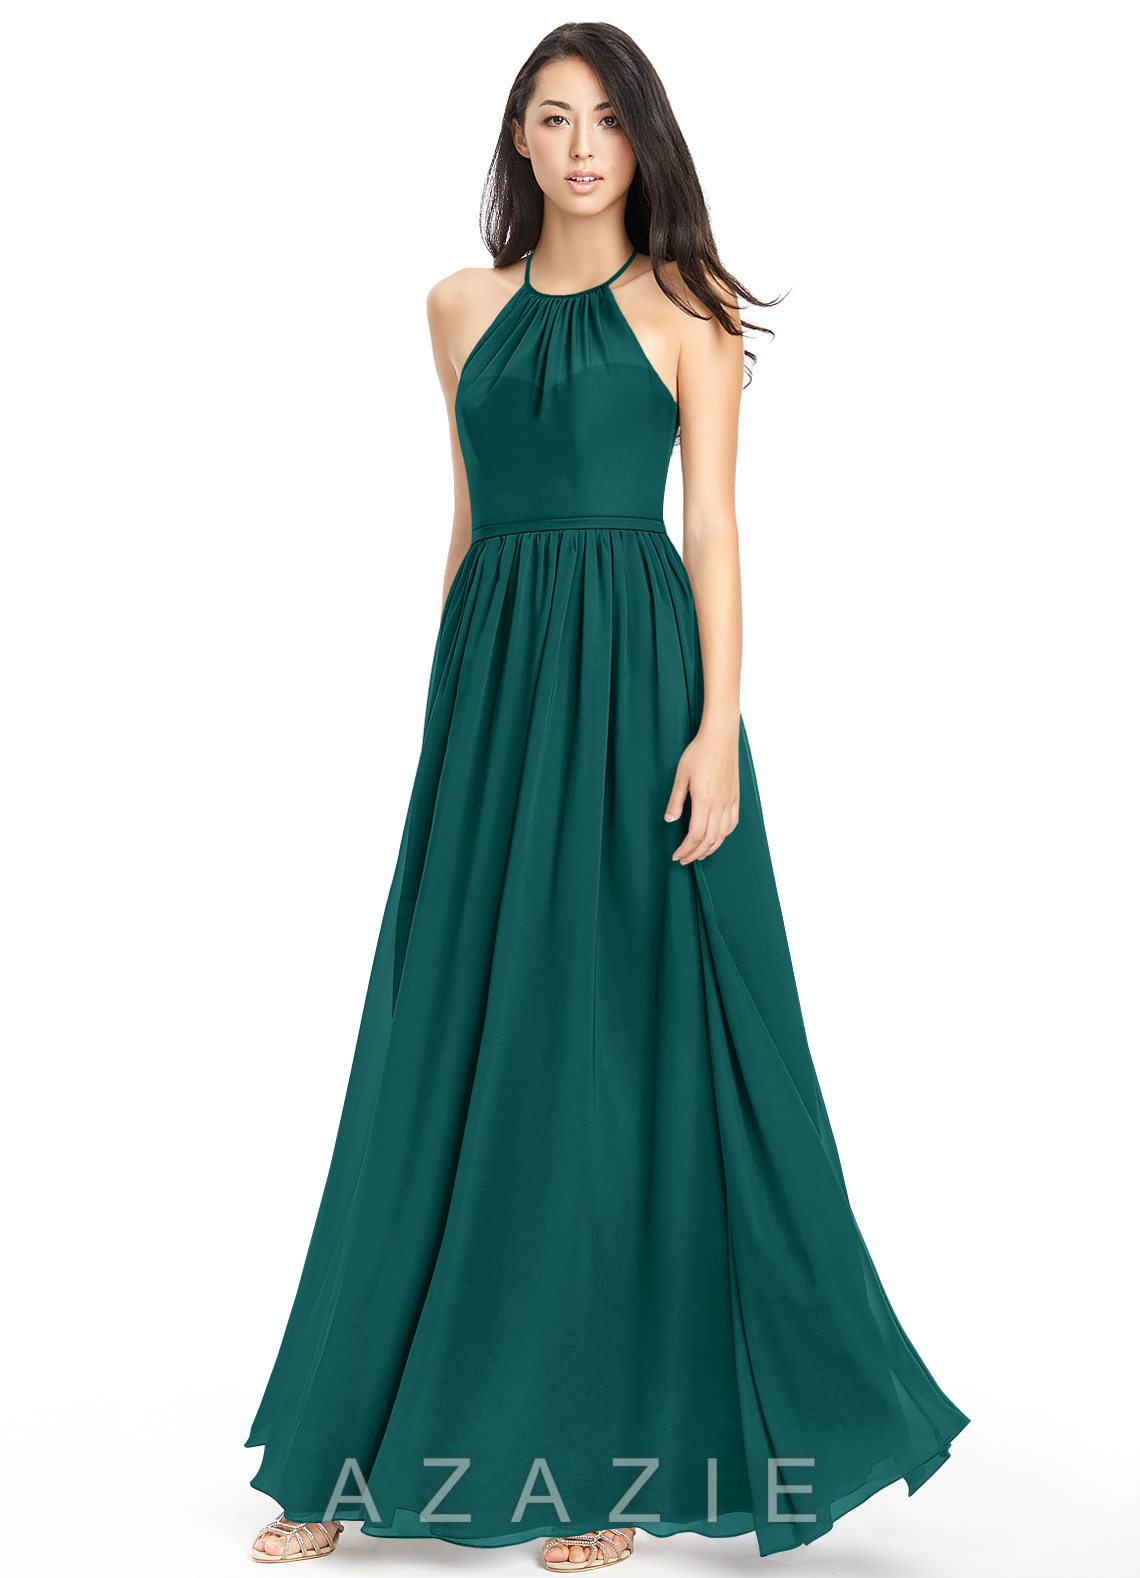 Peacock bridesmaid dresses peacock gowns azazie azazie kailyn azazie kailyn ombrellifo Gallery